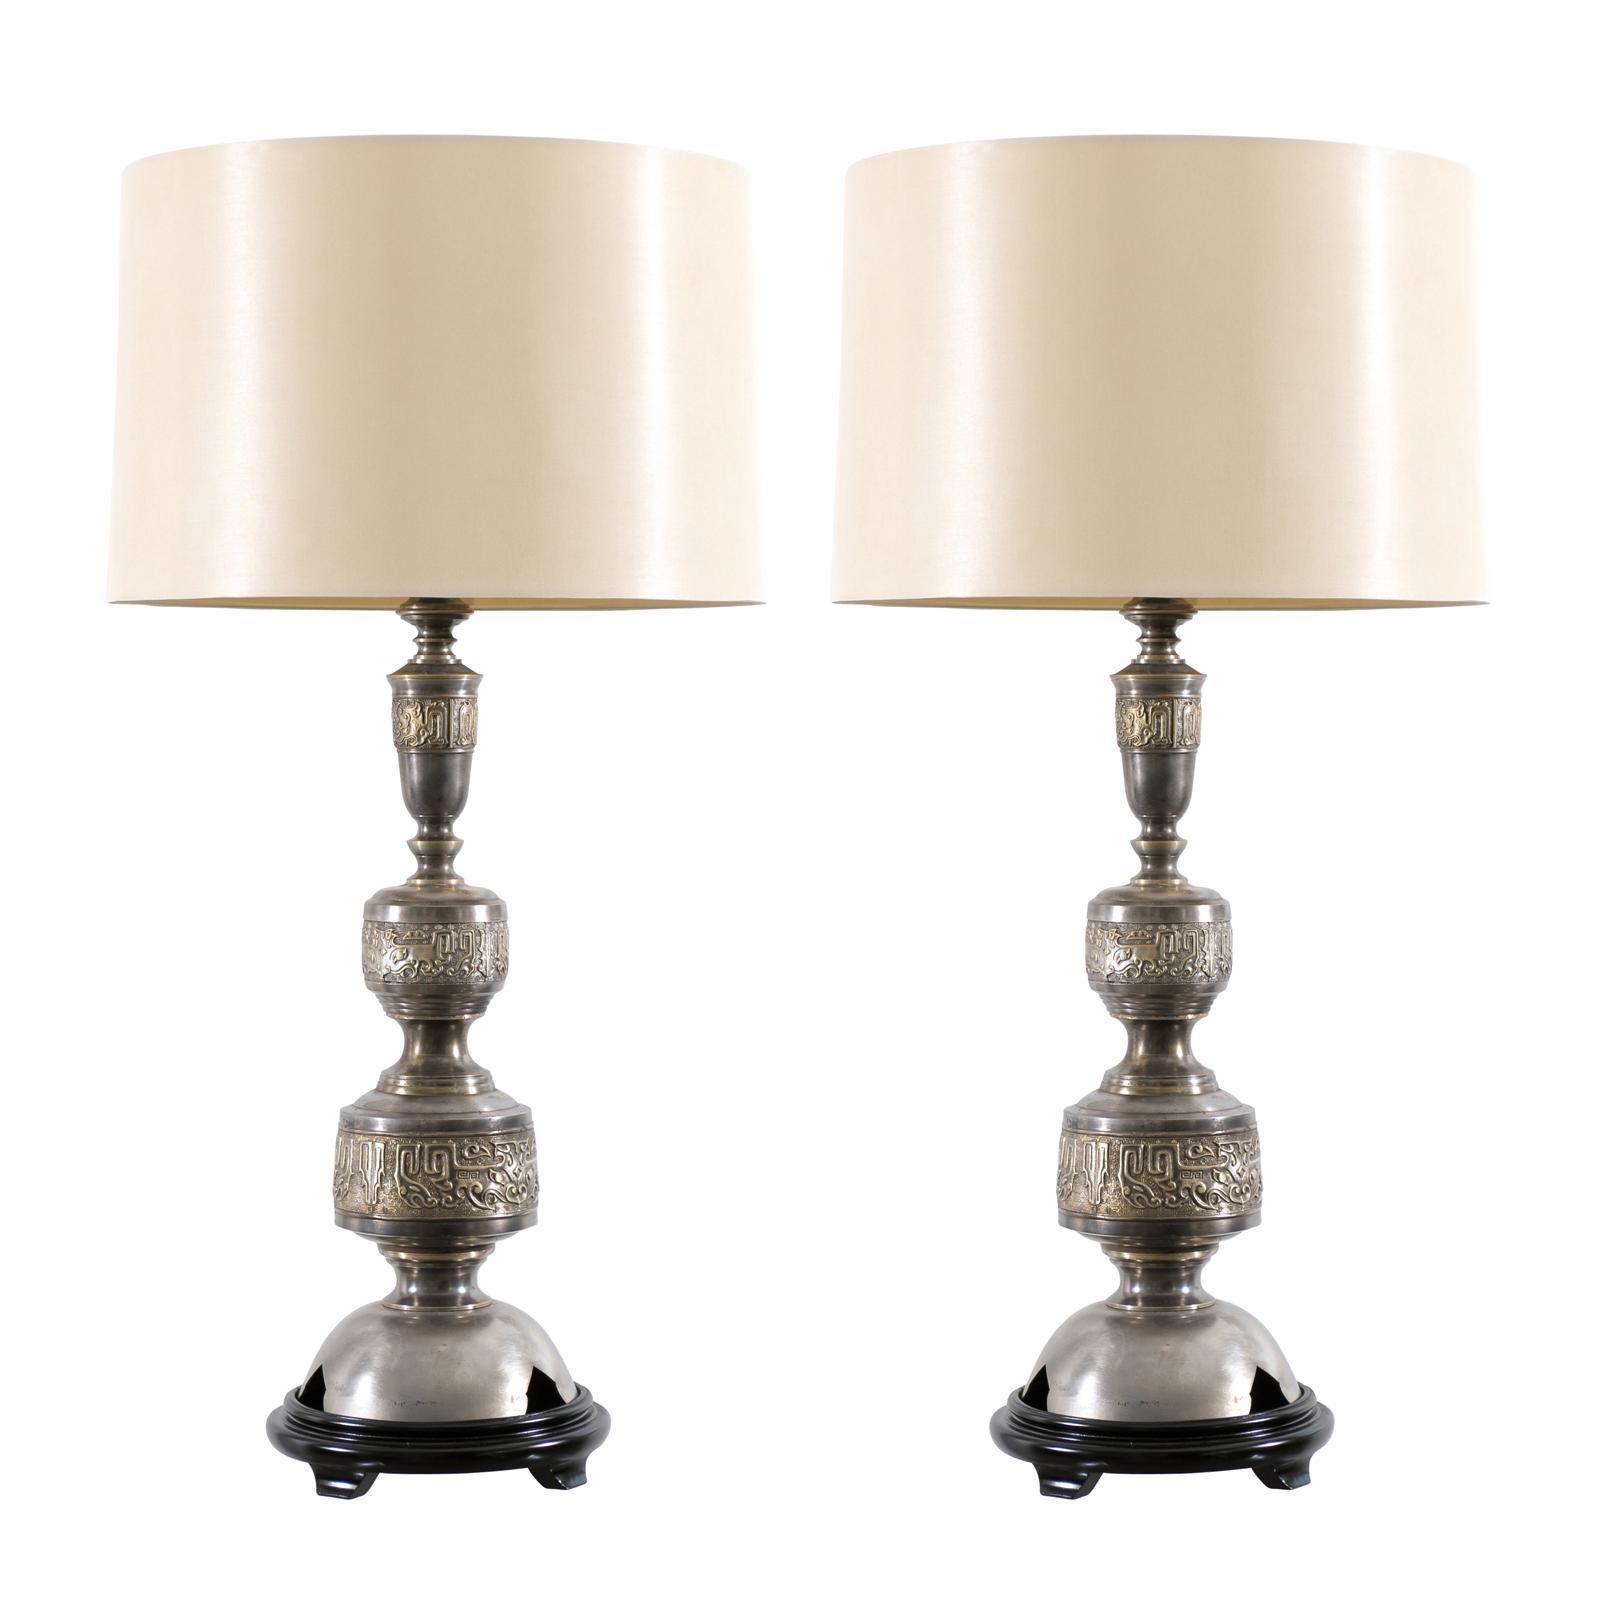 Majestic Pair of Pewter and Brass Marbro Lamps